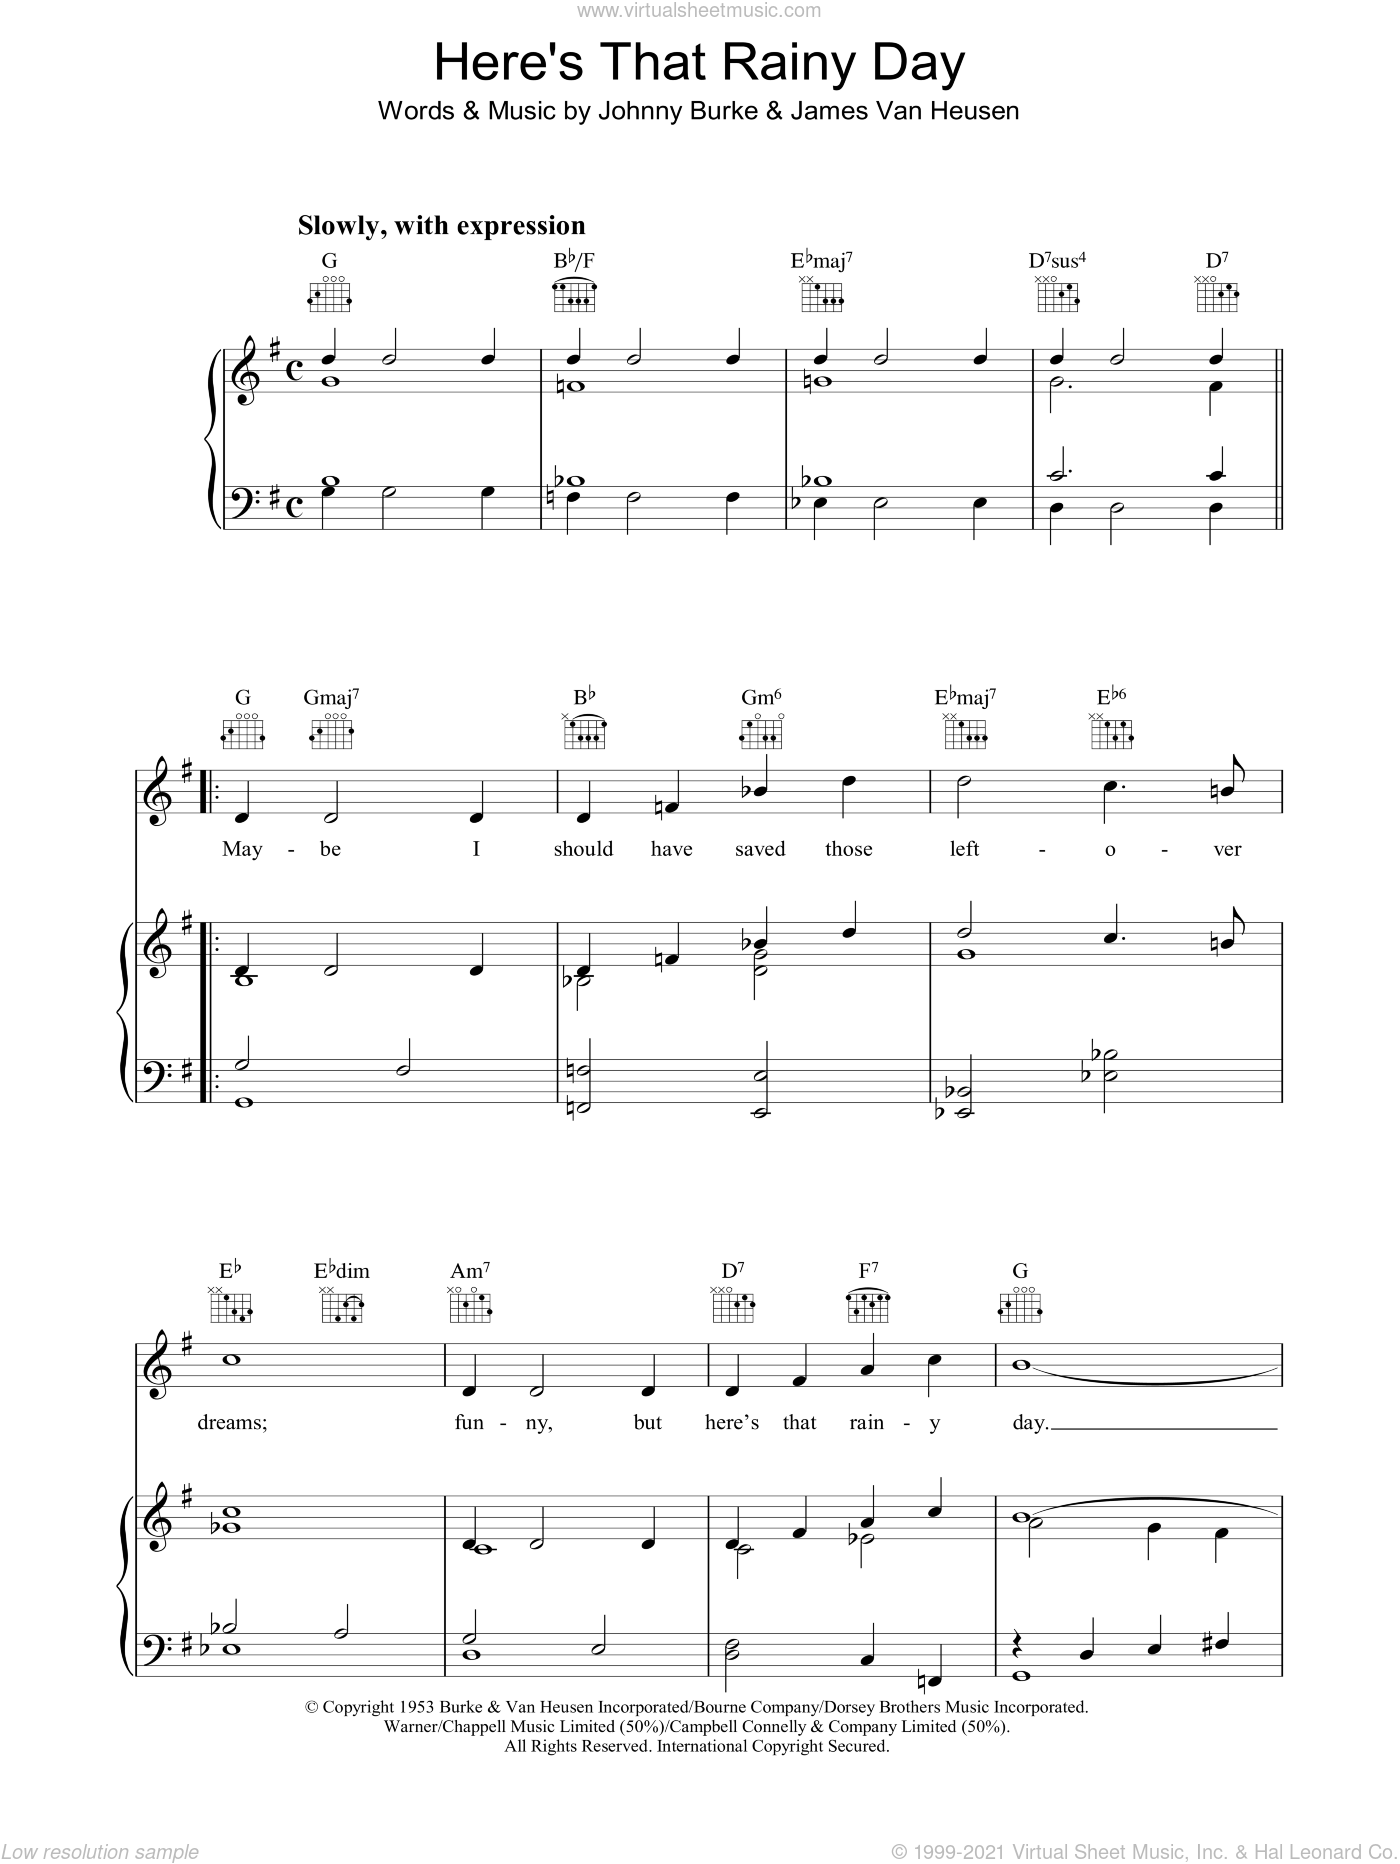 Here's That Rainy Day Sheet Music For Voice, Piano